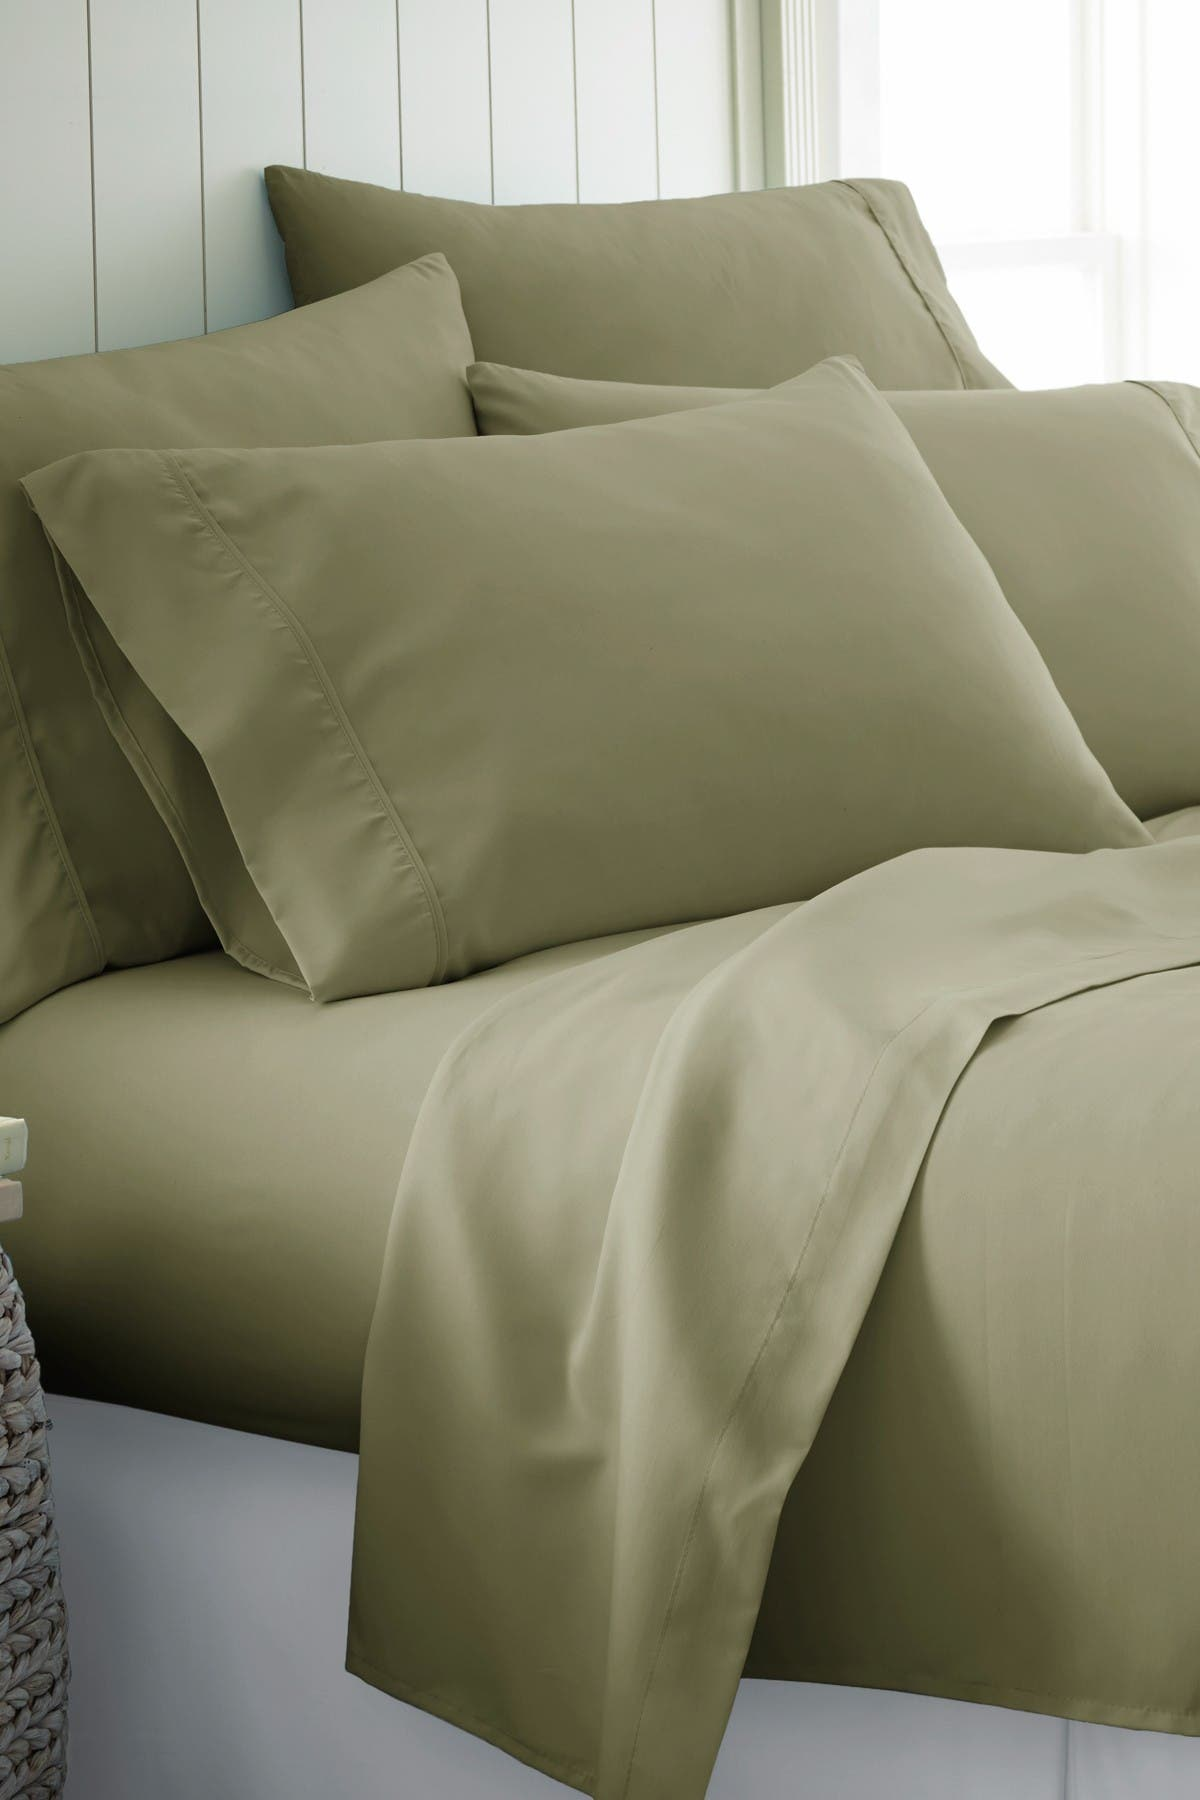 Image of IENJOY HOME Full Hotel Collection Premium Ultra Soft 6-Piece Bed Sheet Set - Sage